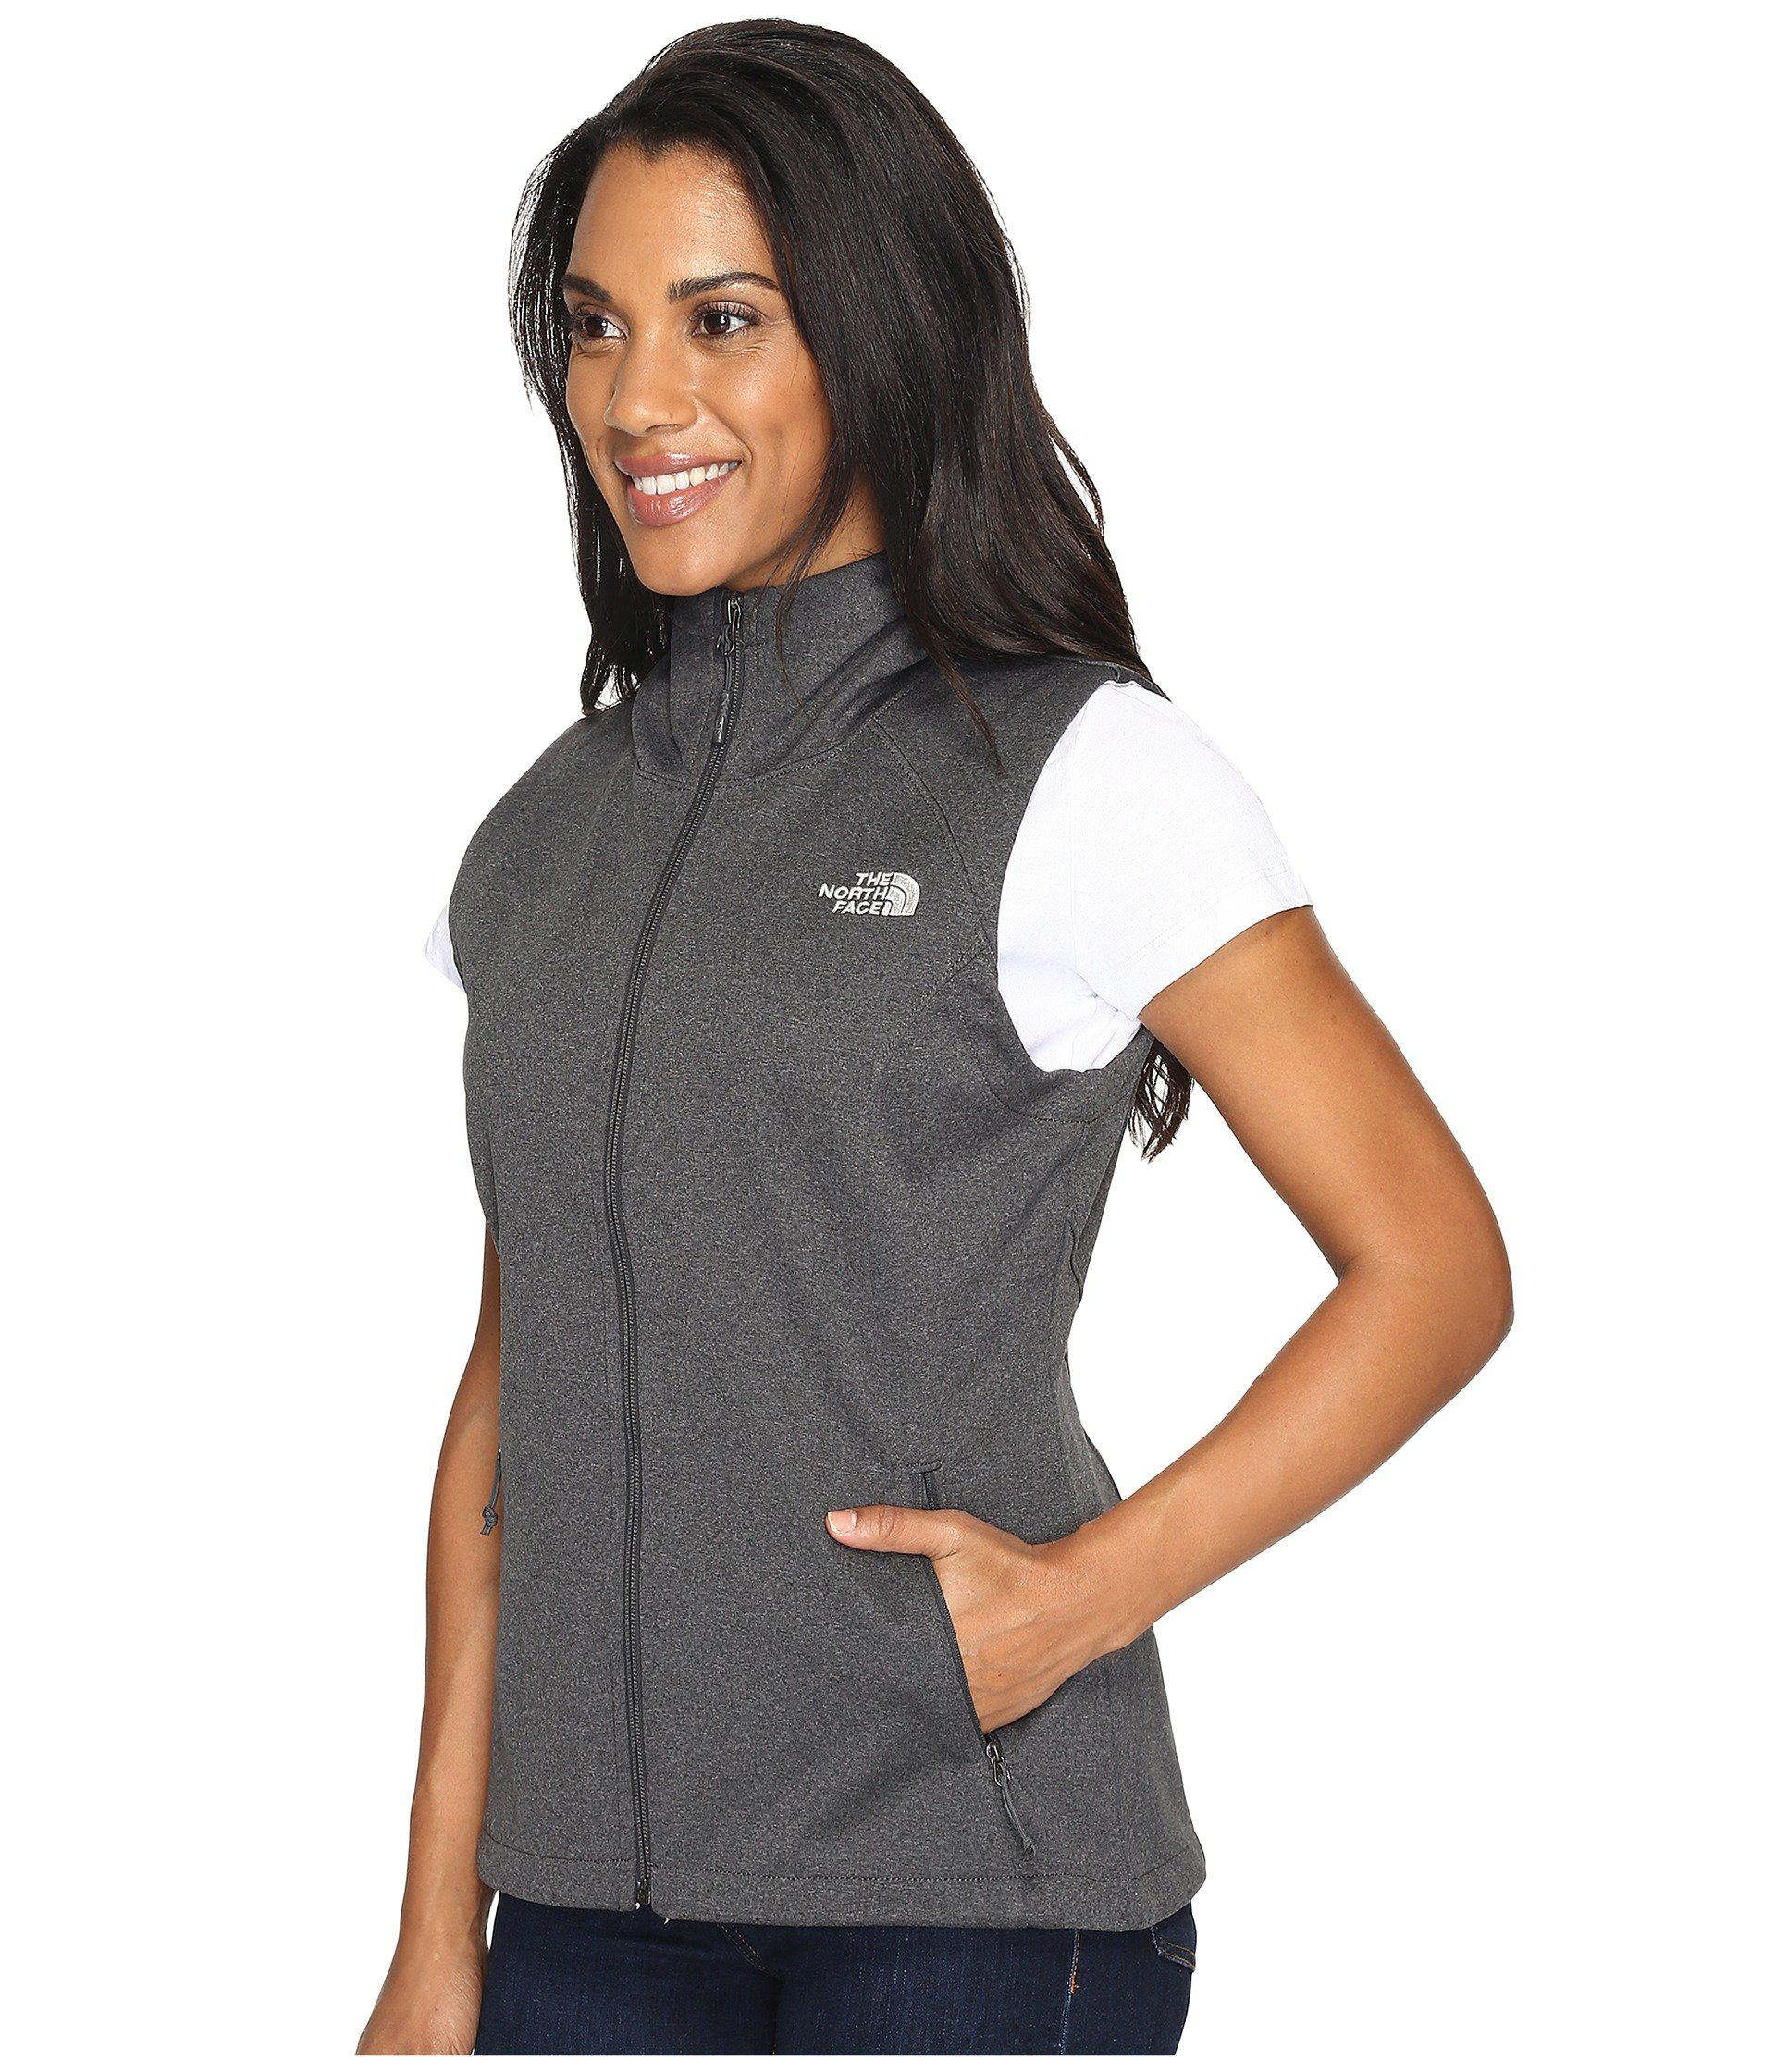 616a874b7695 Lyst - The North Face Canyonwall Hoodie Vest in Gray